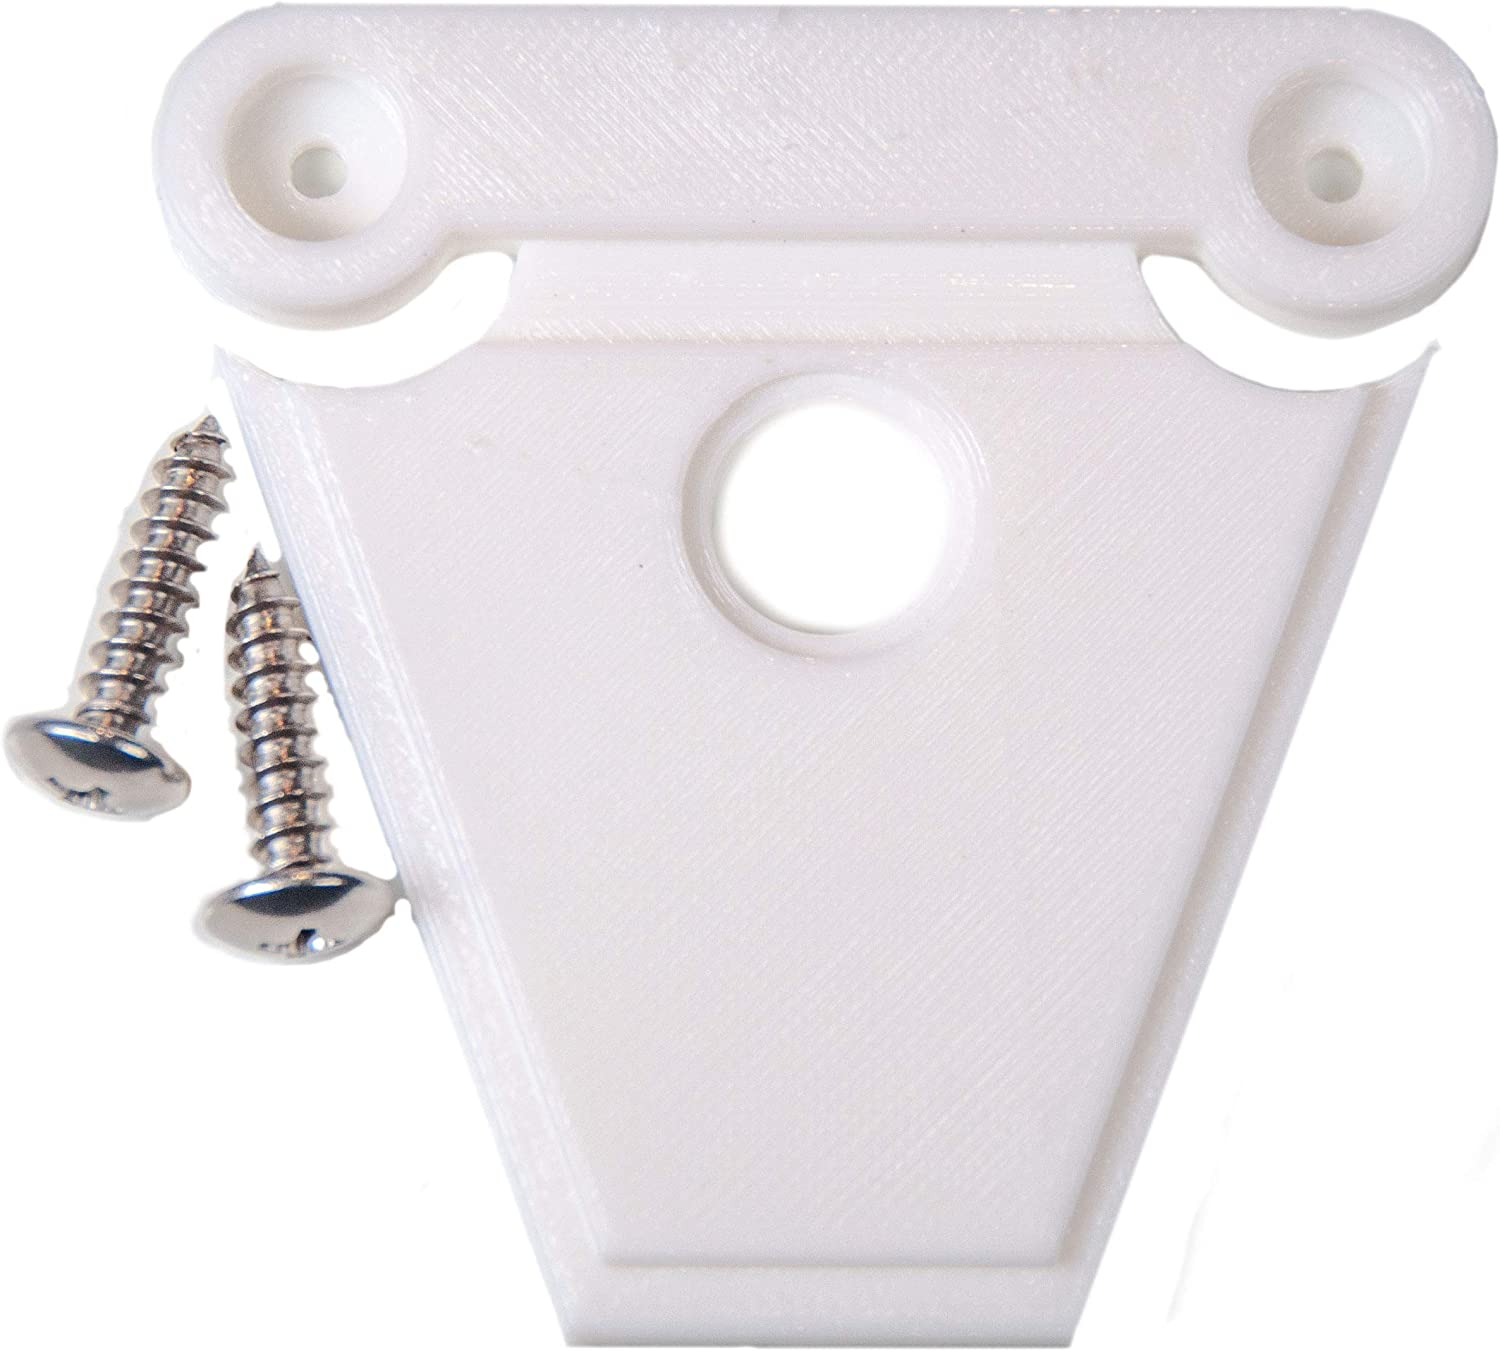 NeverBreak Igloo Cooler Latch Replacement | High Strength Igloo Cooler Replacement Parts | 1 Cooler Latch